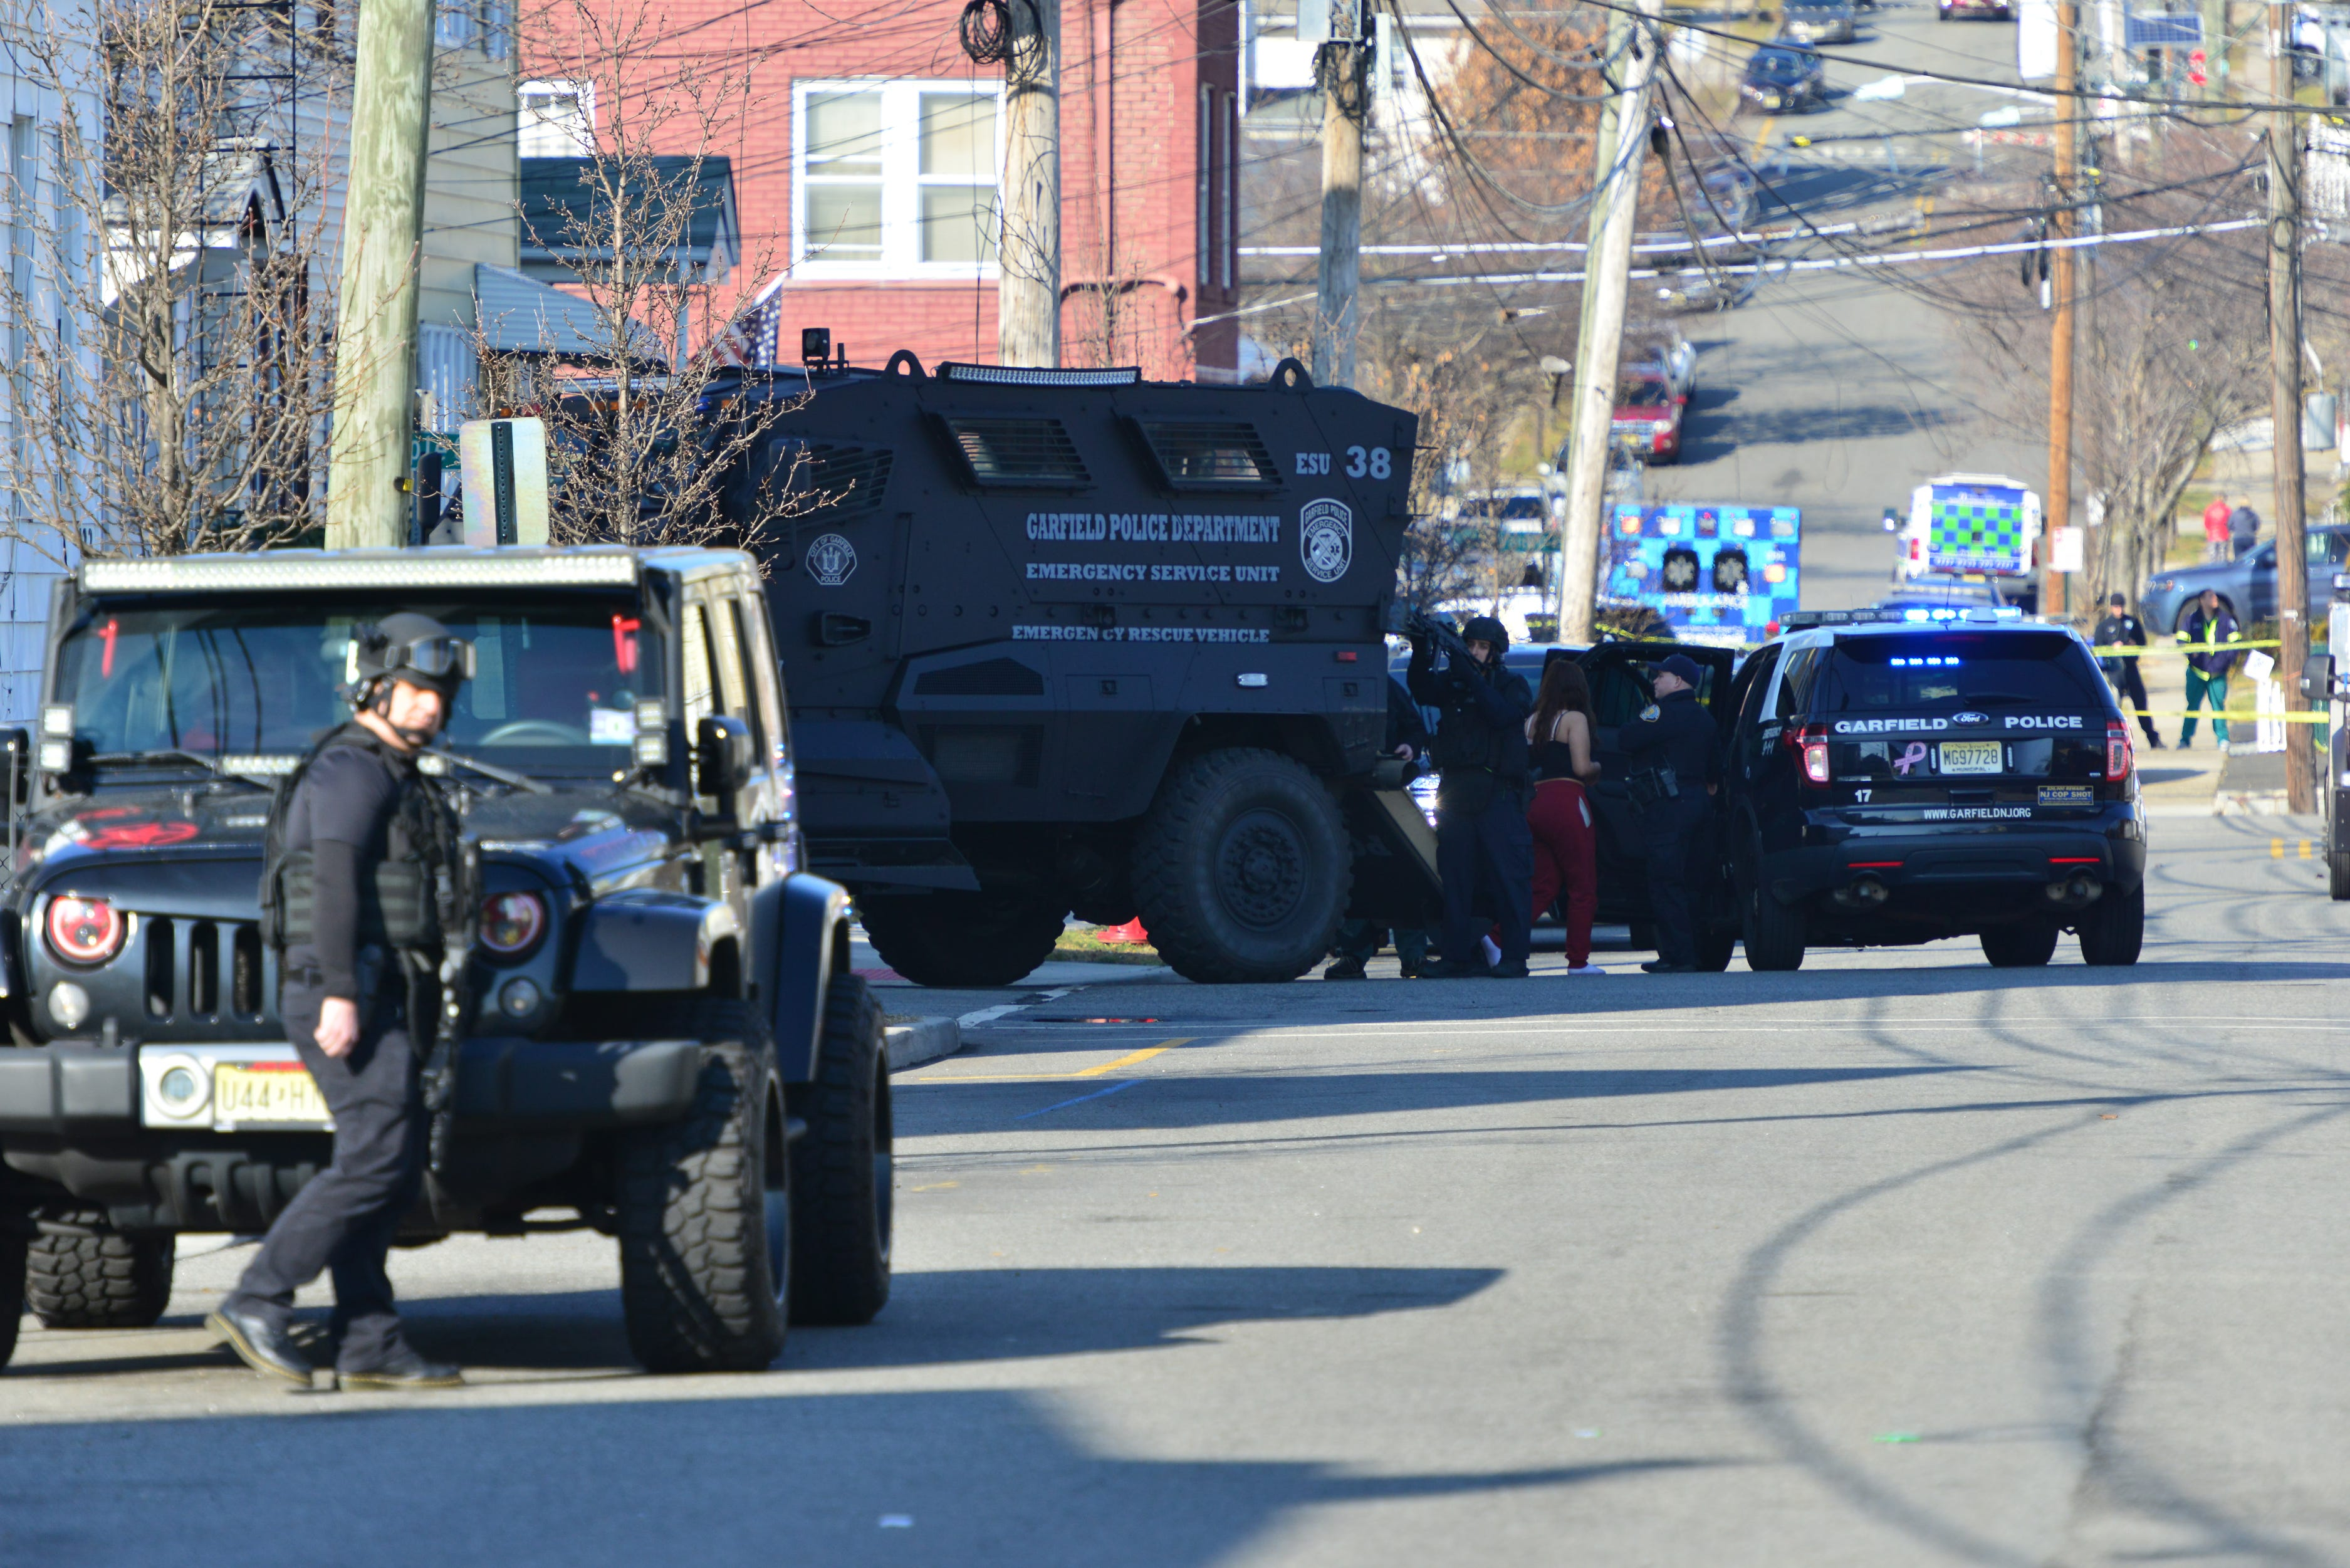 Swat Response Closes Garfield Nj Streets After Gunfire Report